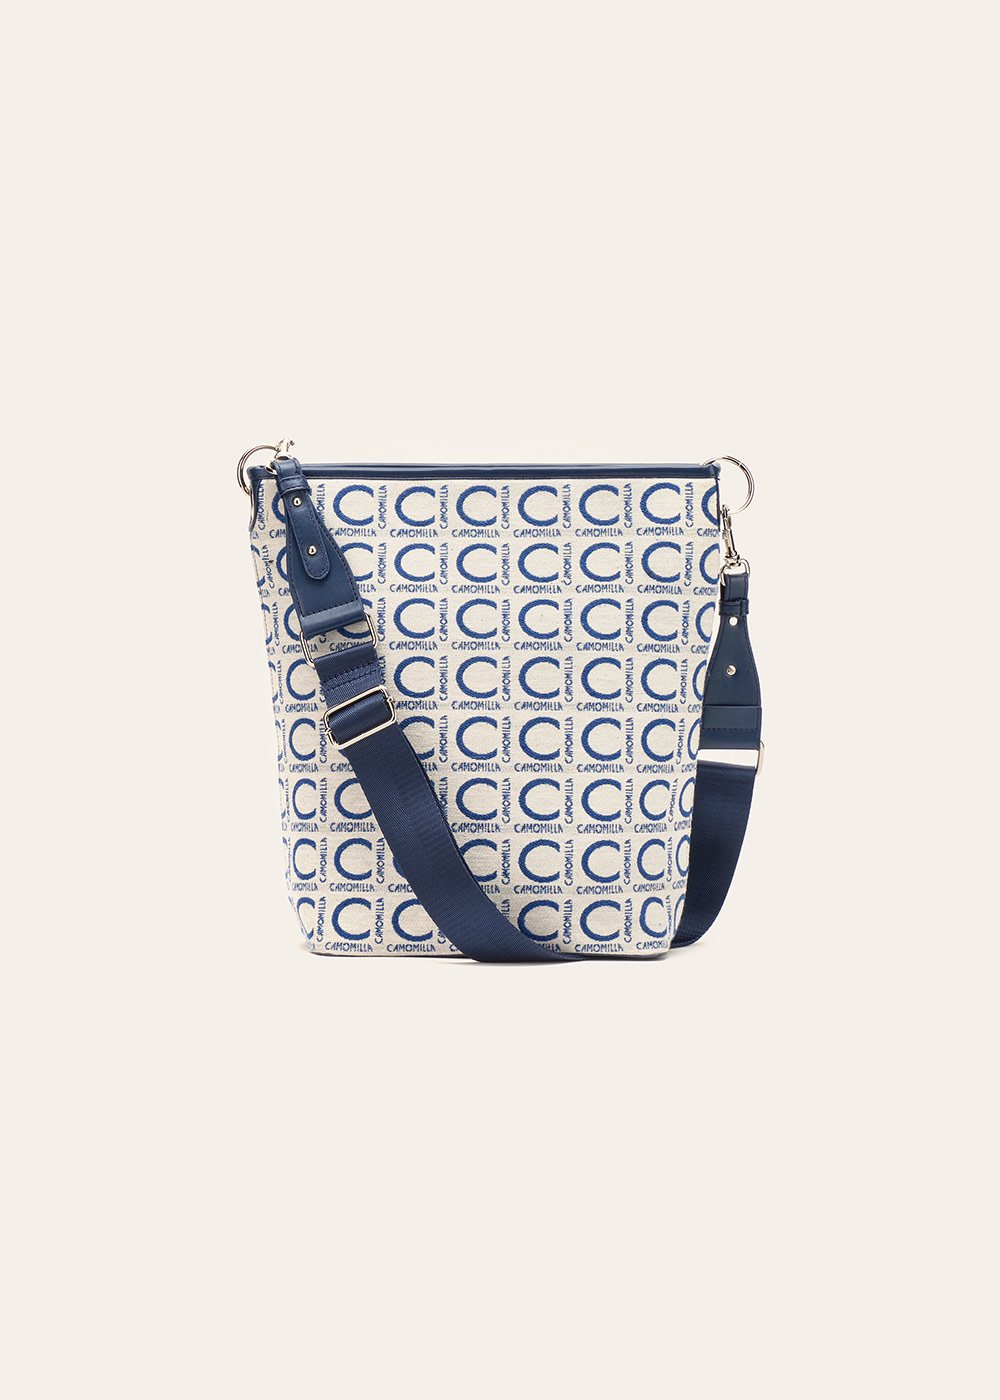 Bardy logomania shoulder bag - Avion / White - Woman